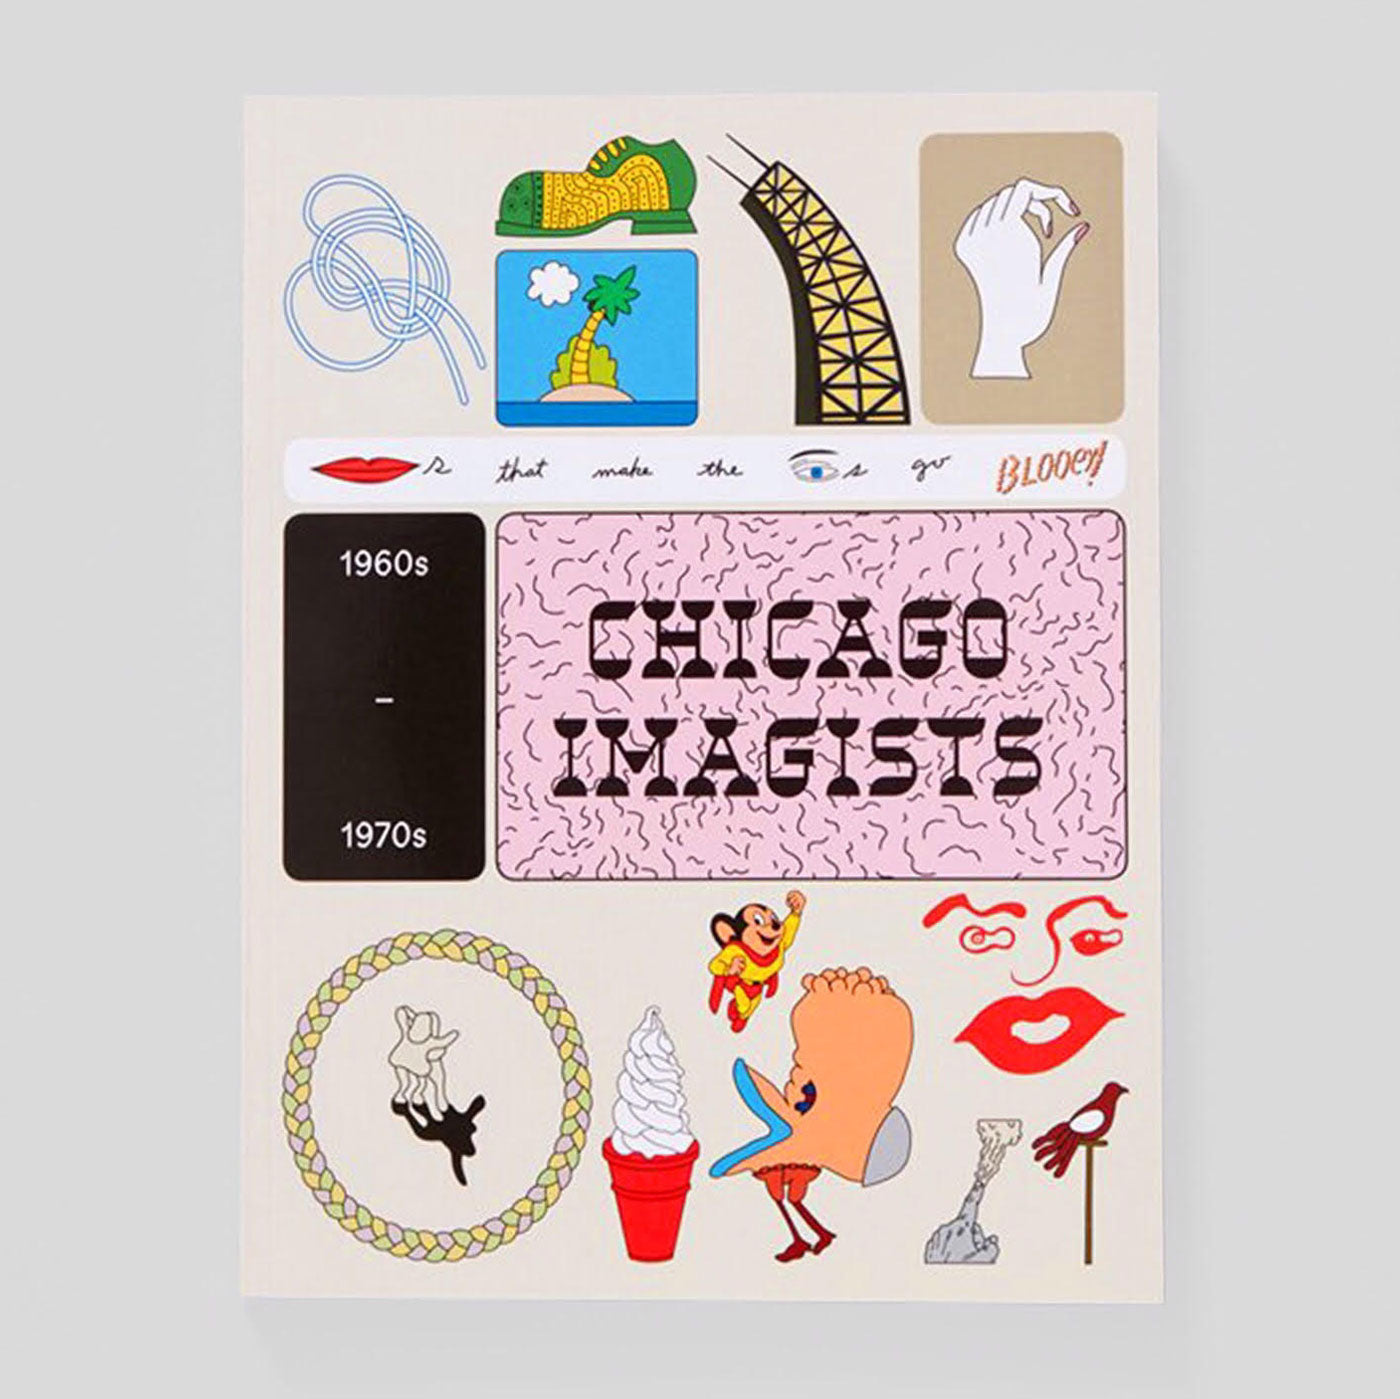 Chicago Imagists 1960s - 1970s